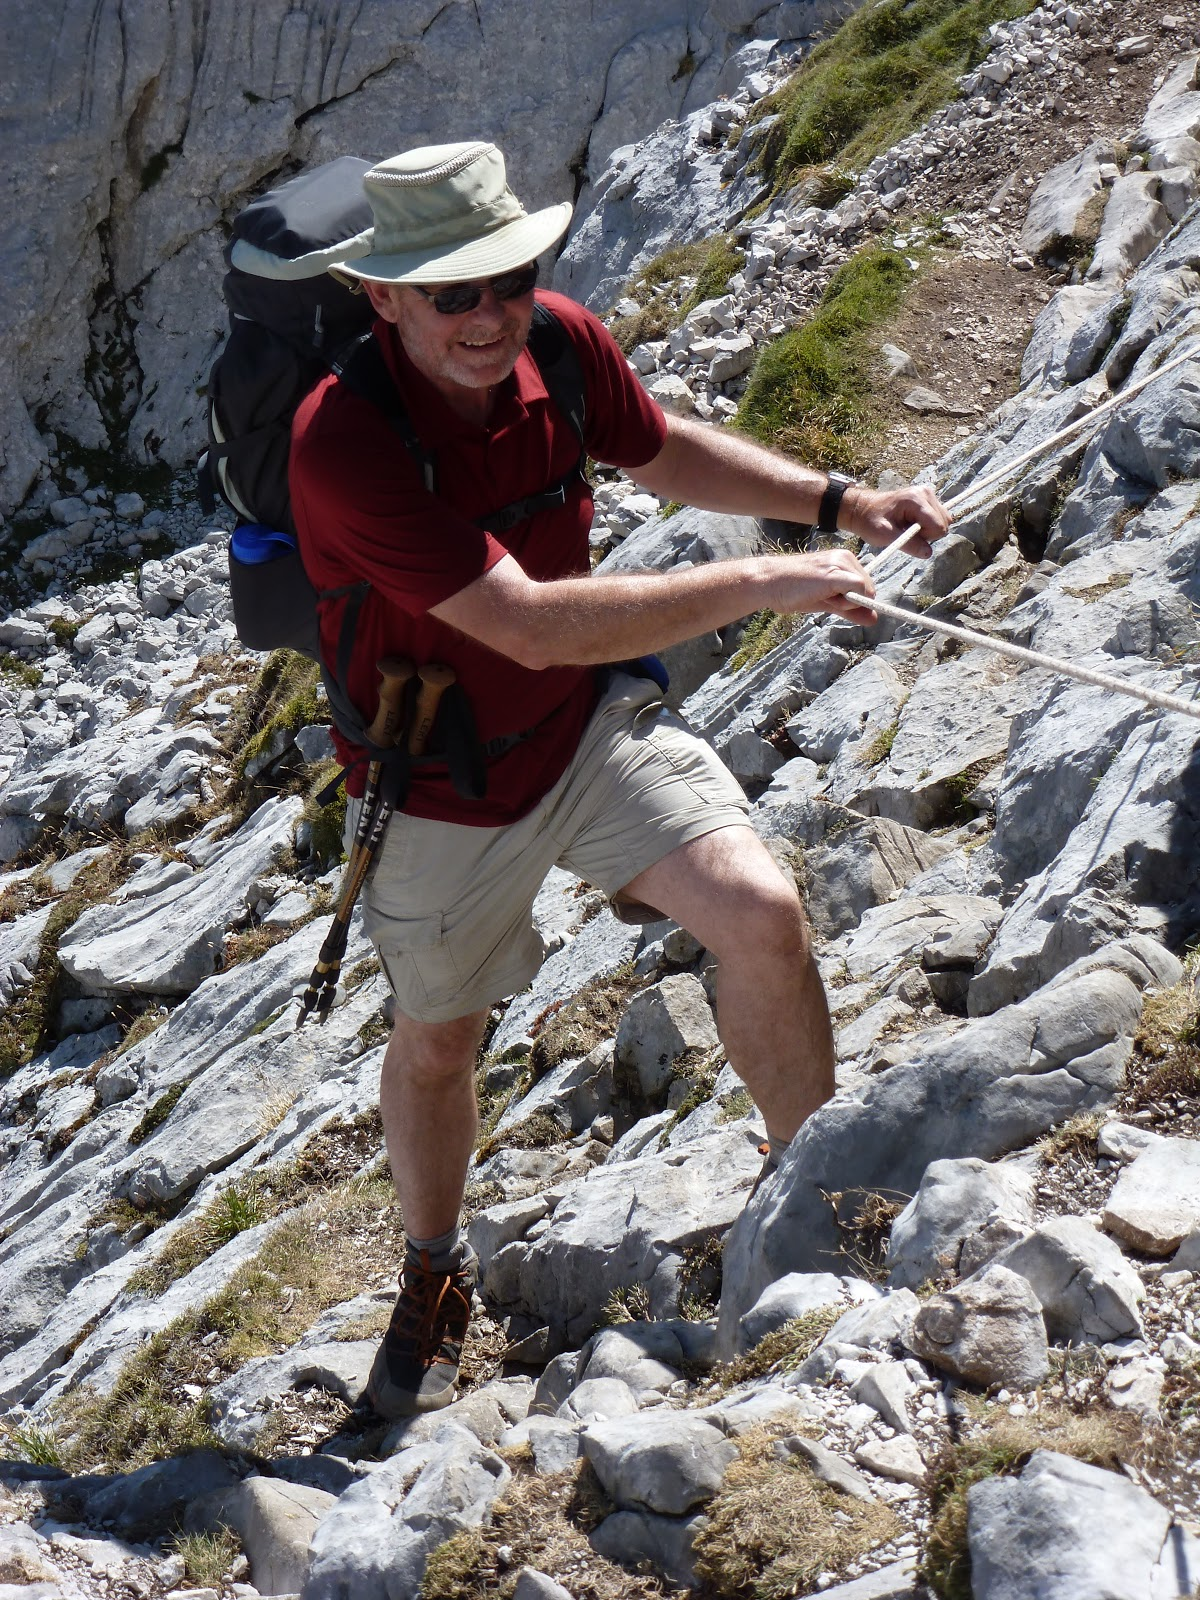 David using rope on steep rocks